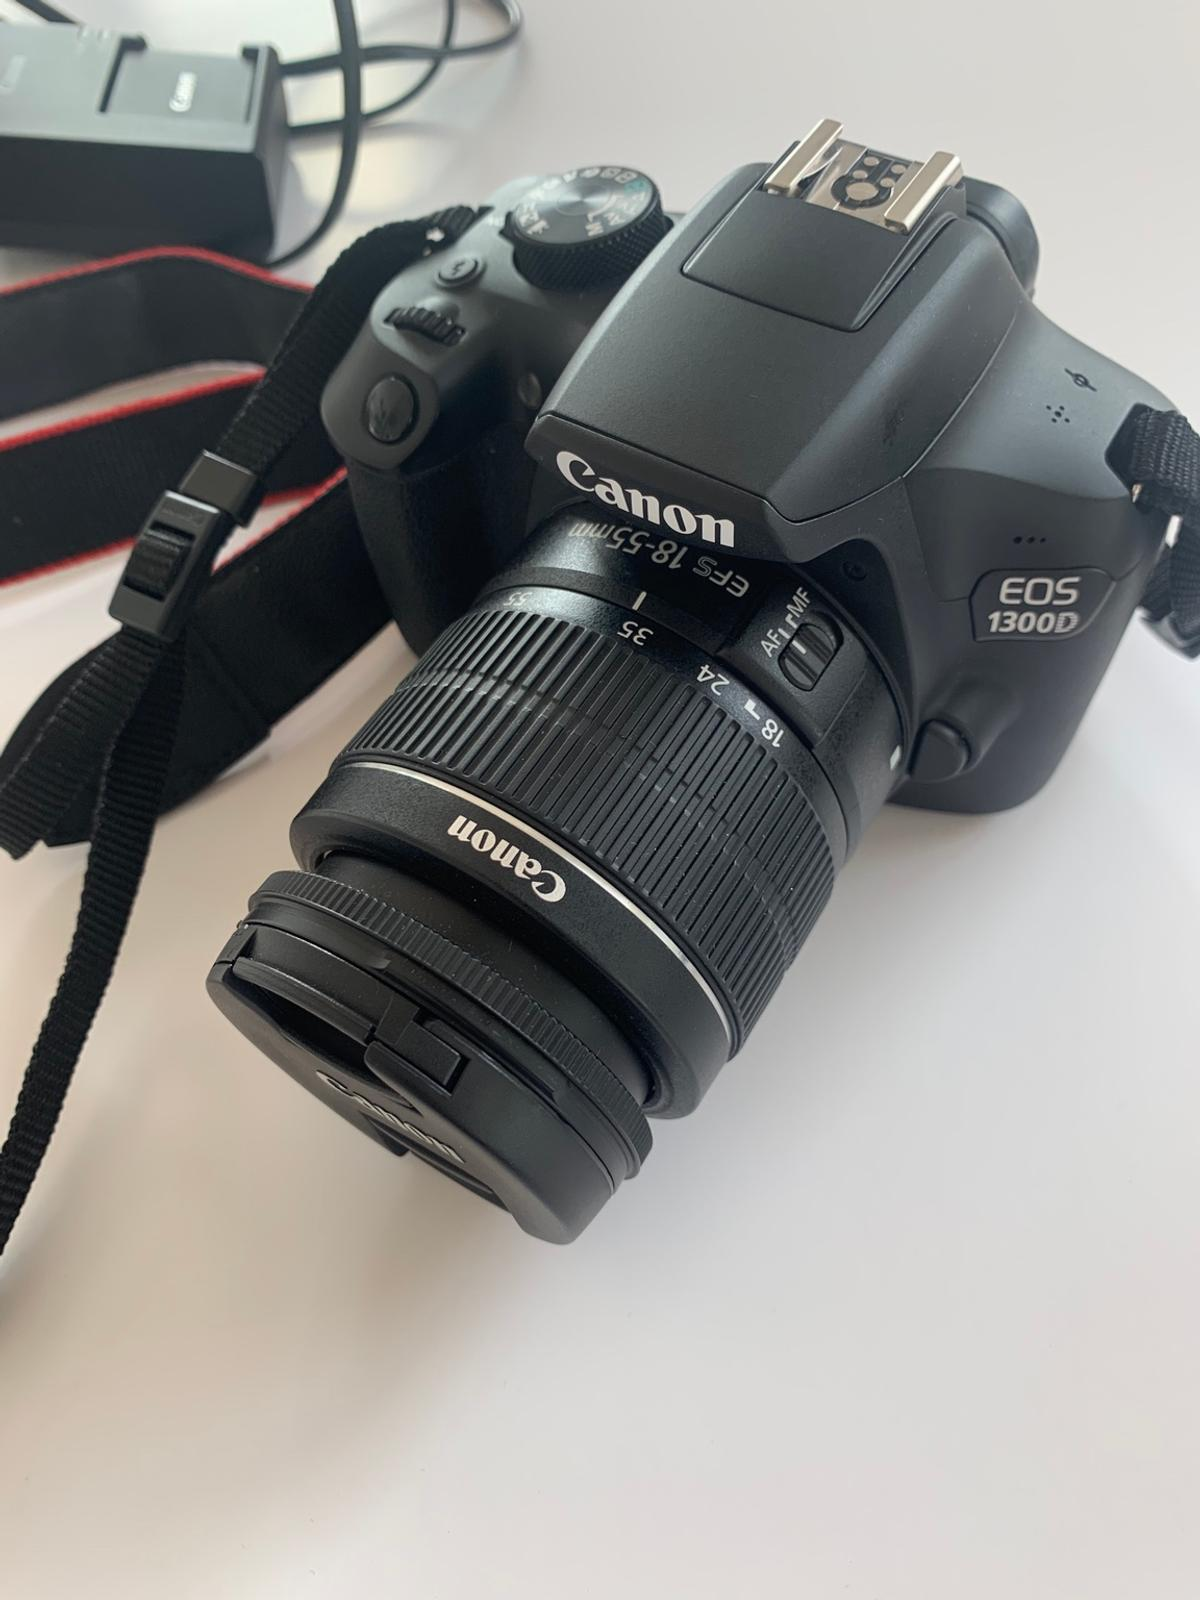 Canon EOS 1300d SLR Camera in N1 London for £150 00 for sale